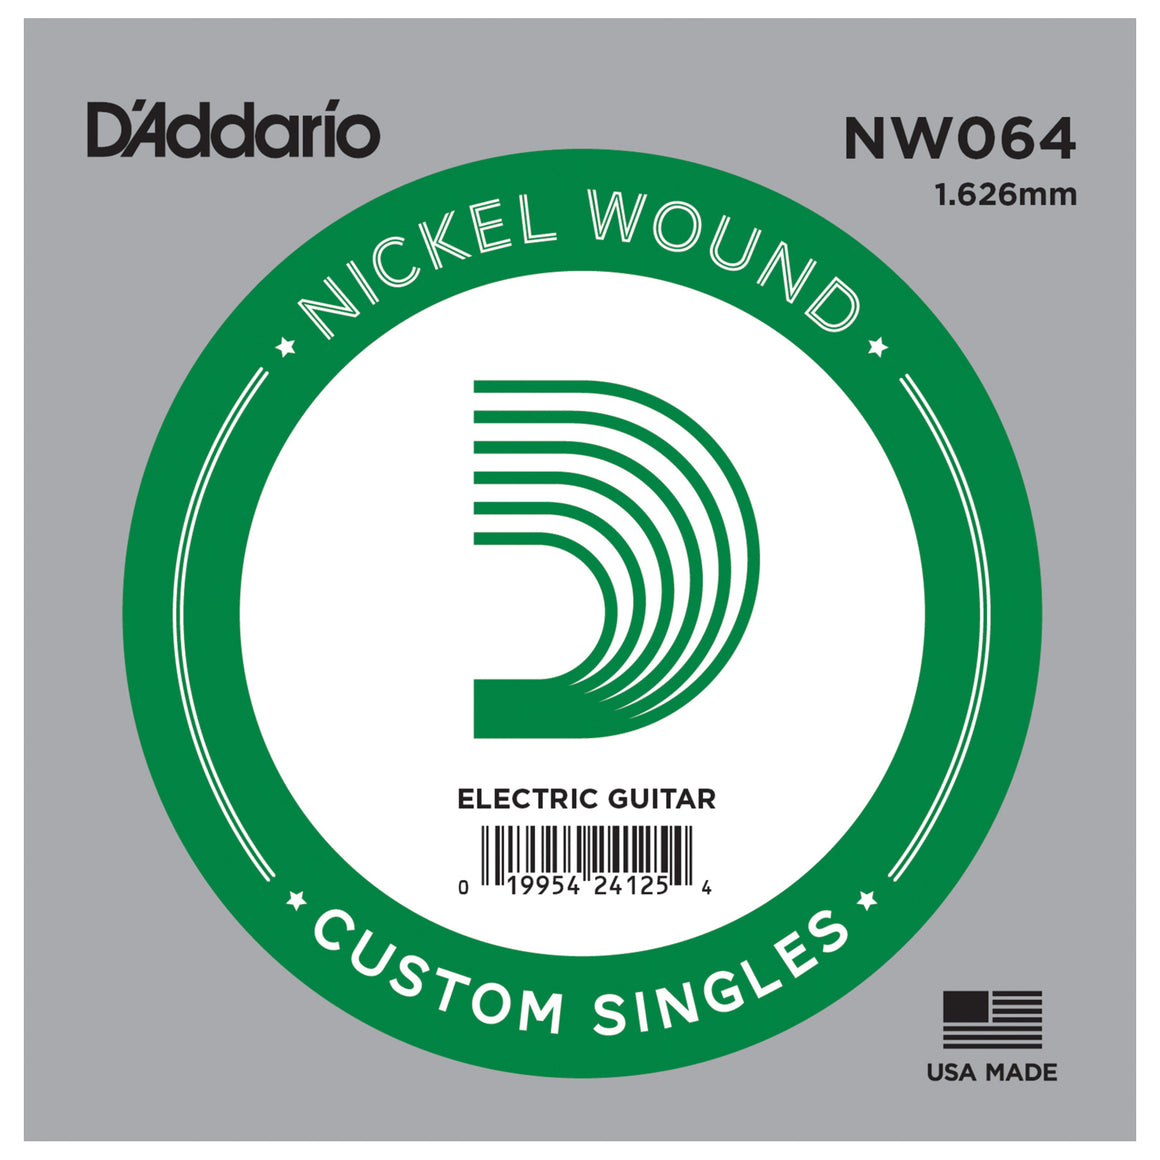 D'Addario NW064 Nickel Wound Single Guitar String .064